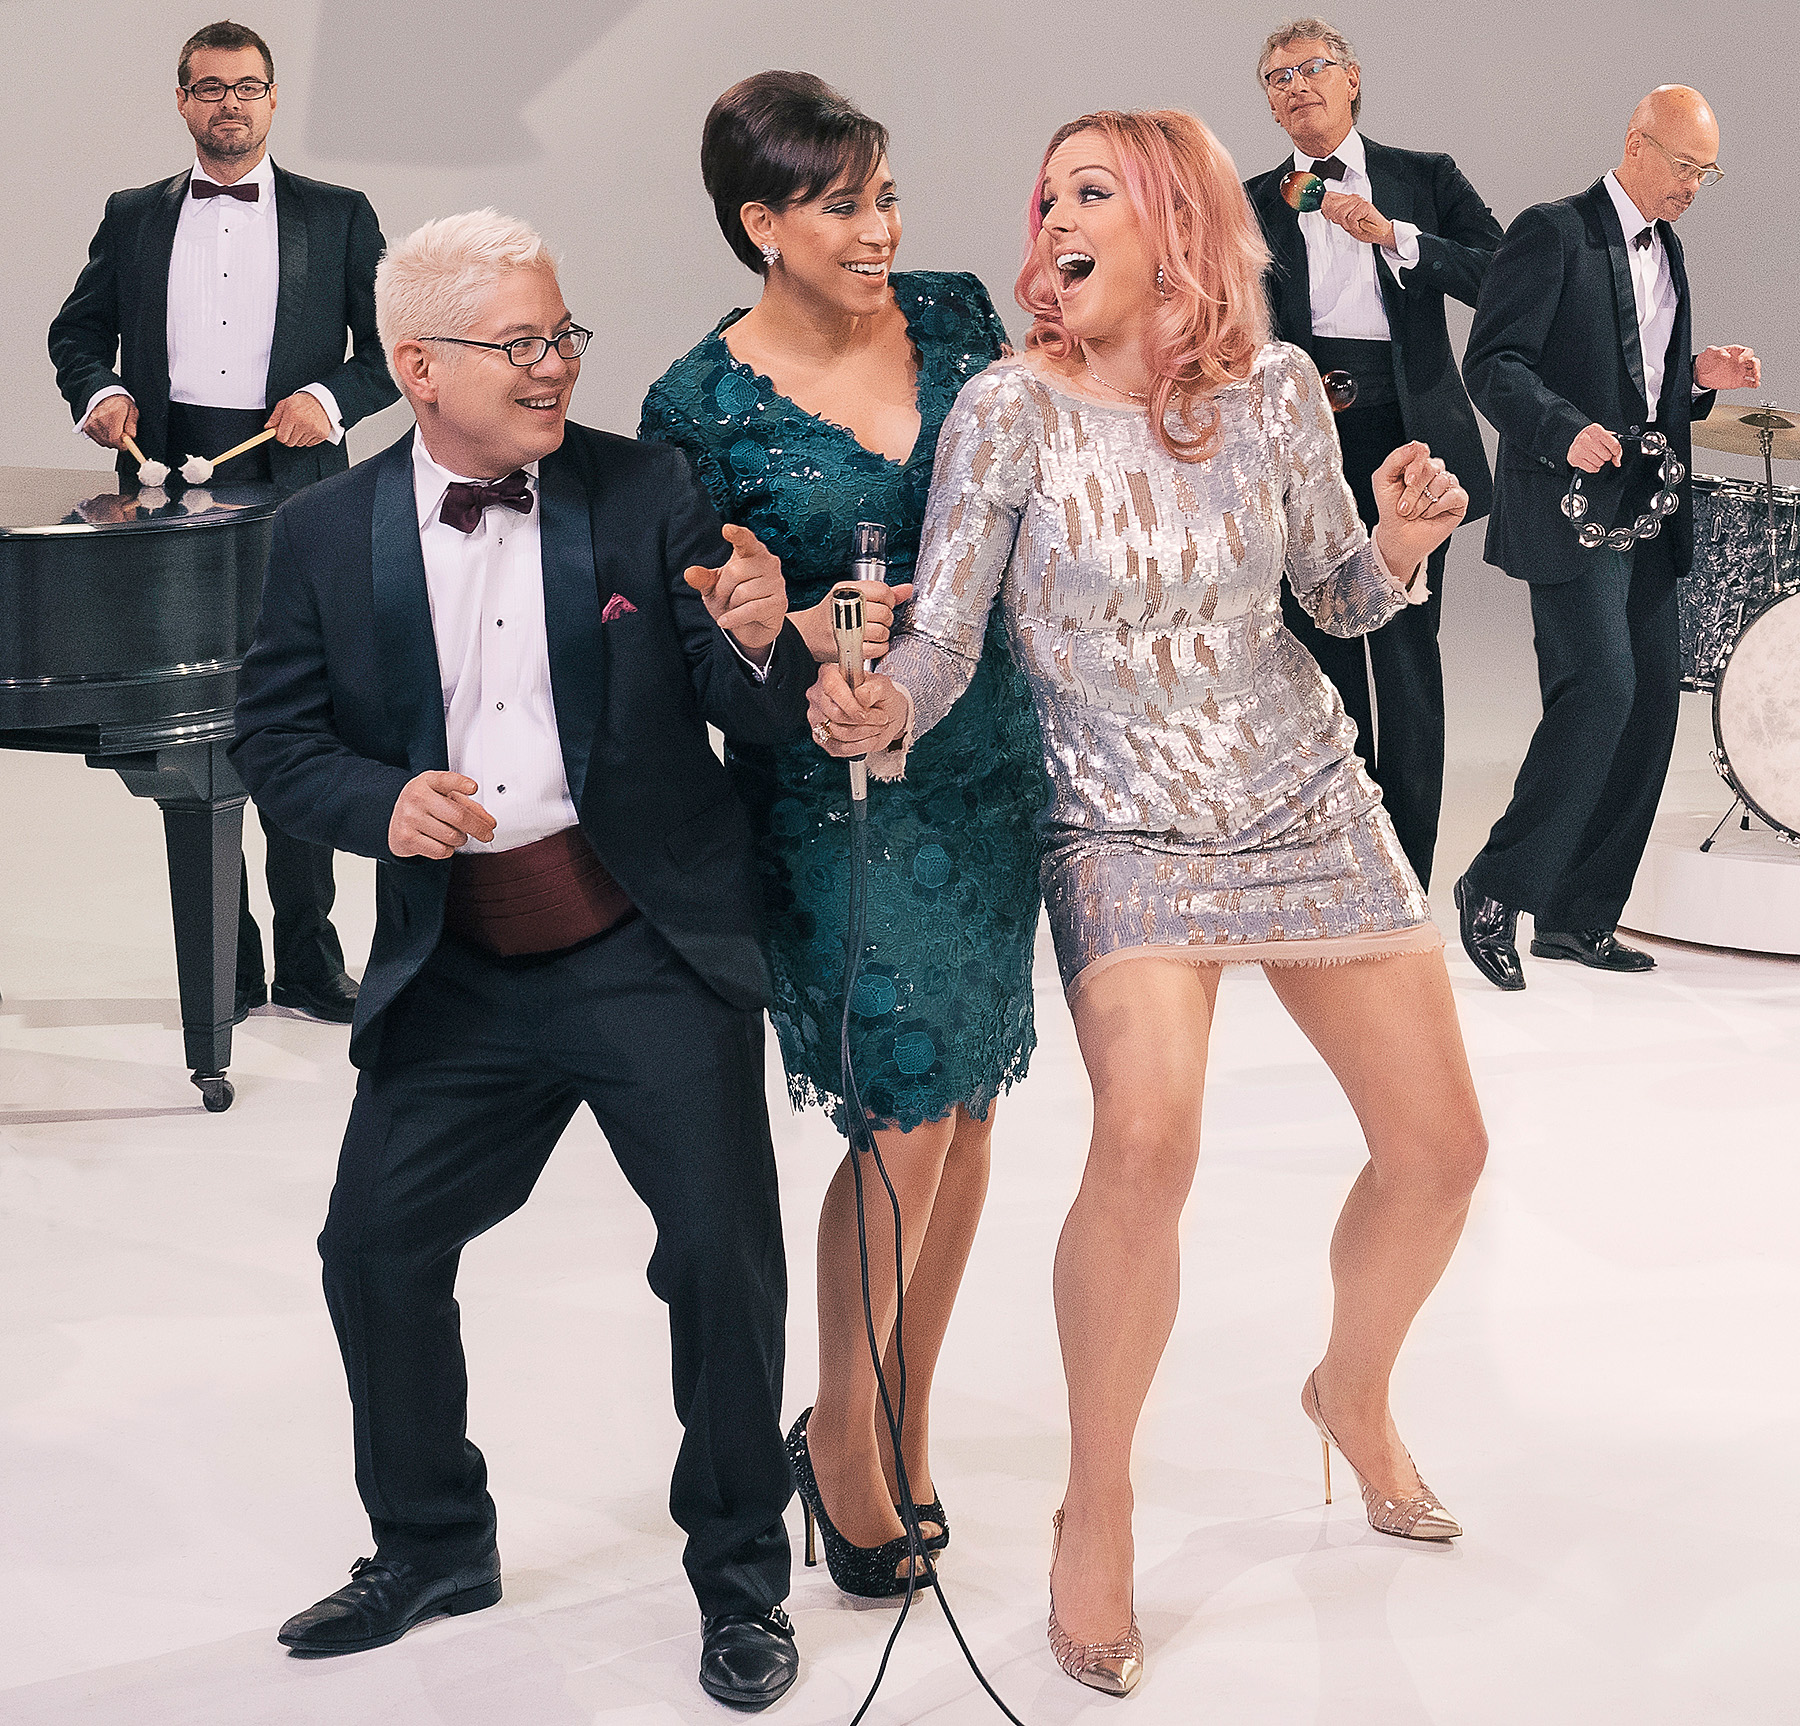 Pink Martini, Photo Credit: Chris Hornbecker